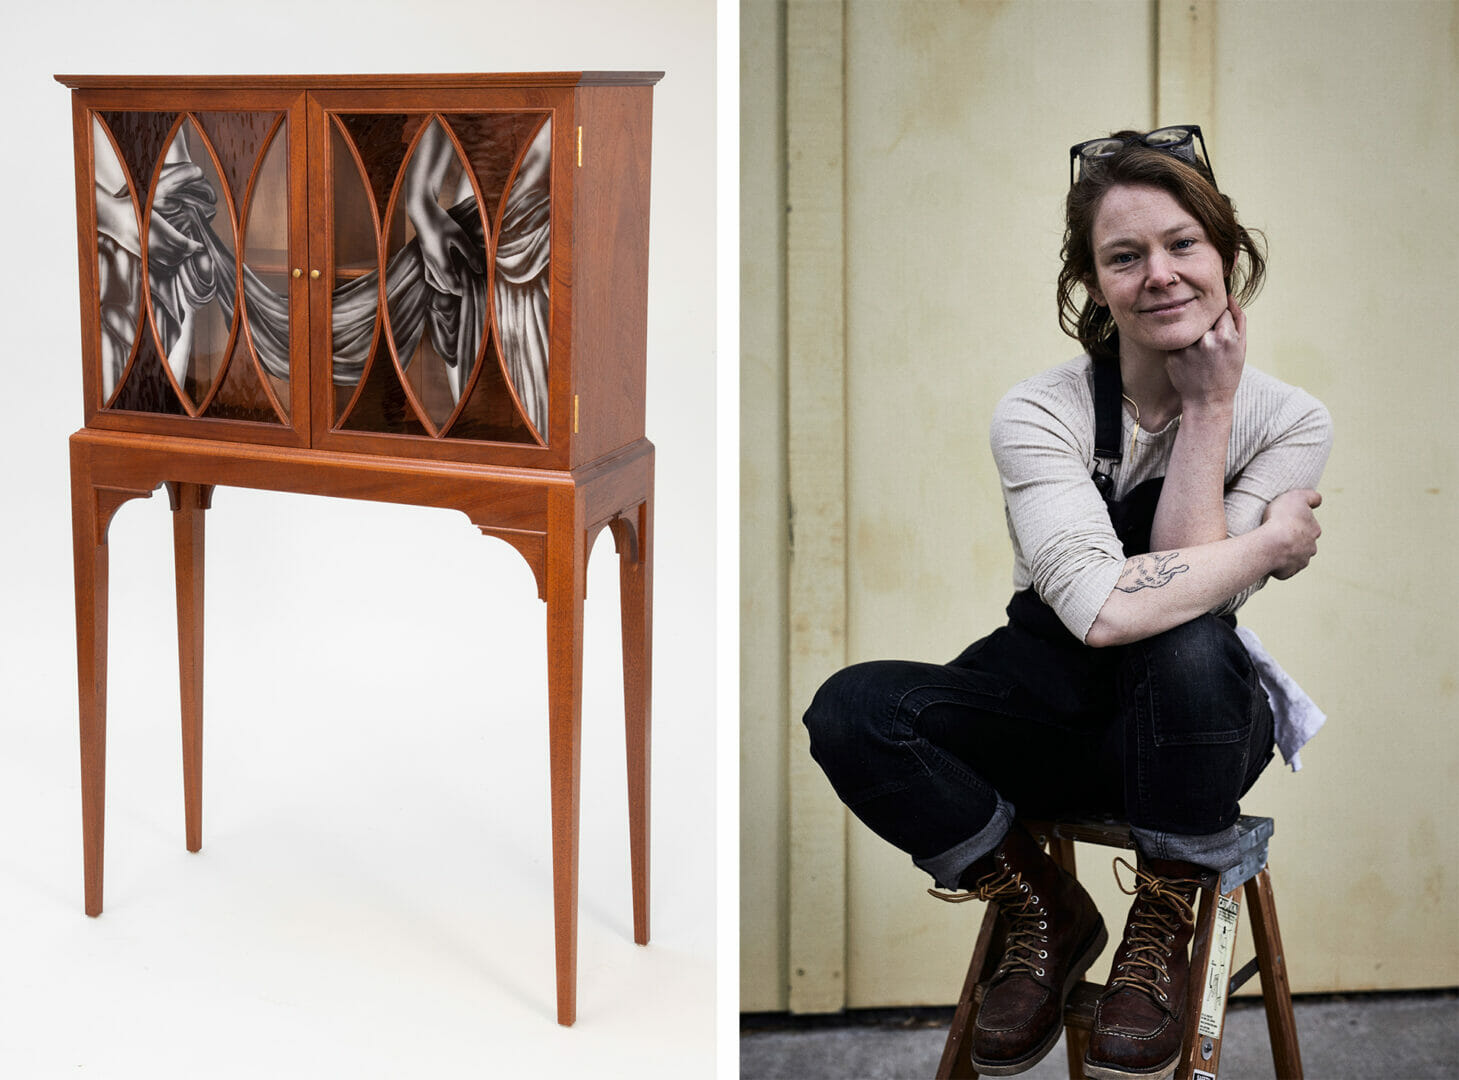 photo on left of a cabinet on legs with glass front doors. The doors have figures etched into them. On the right a woman in work clothes sits on a stool, smiling and leaning her chin on her hand.